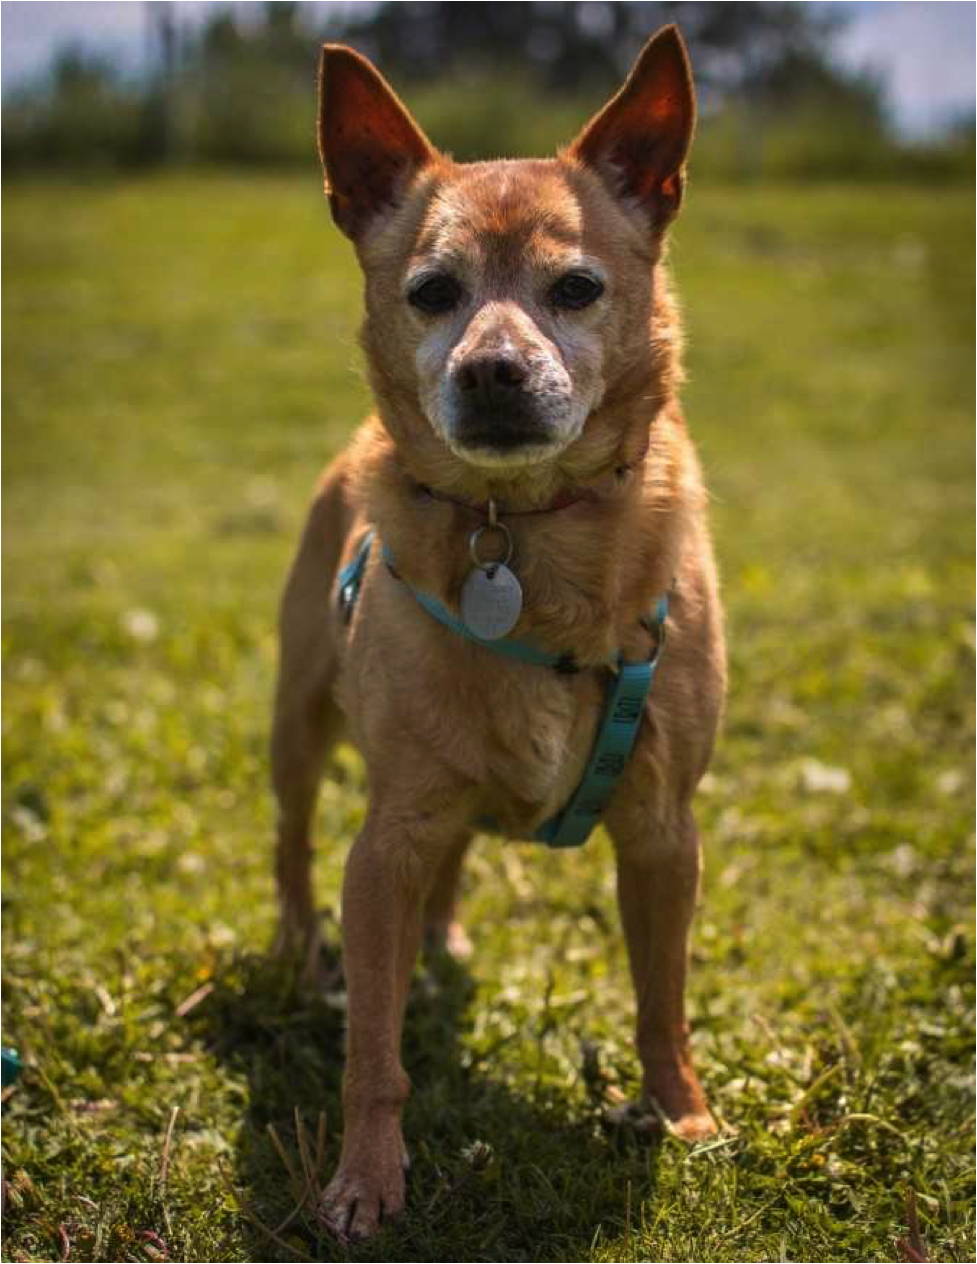 Small tan dog standing on grass